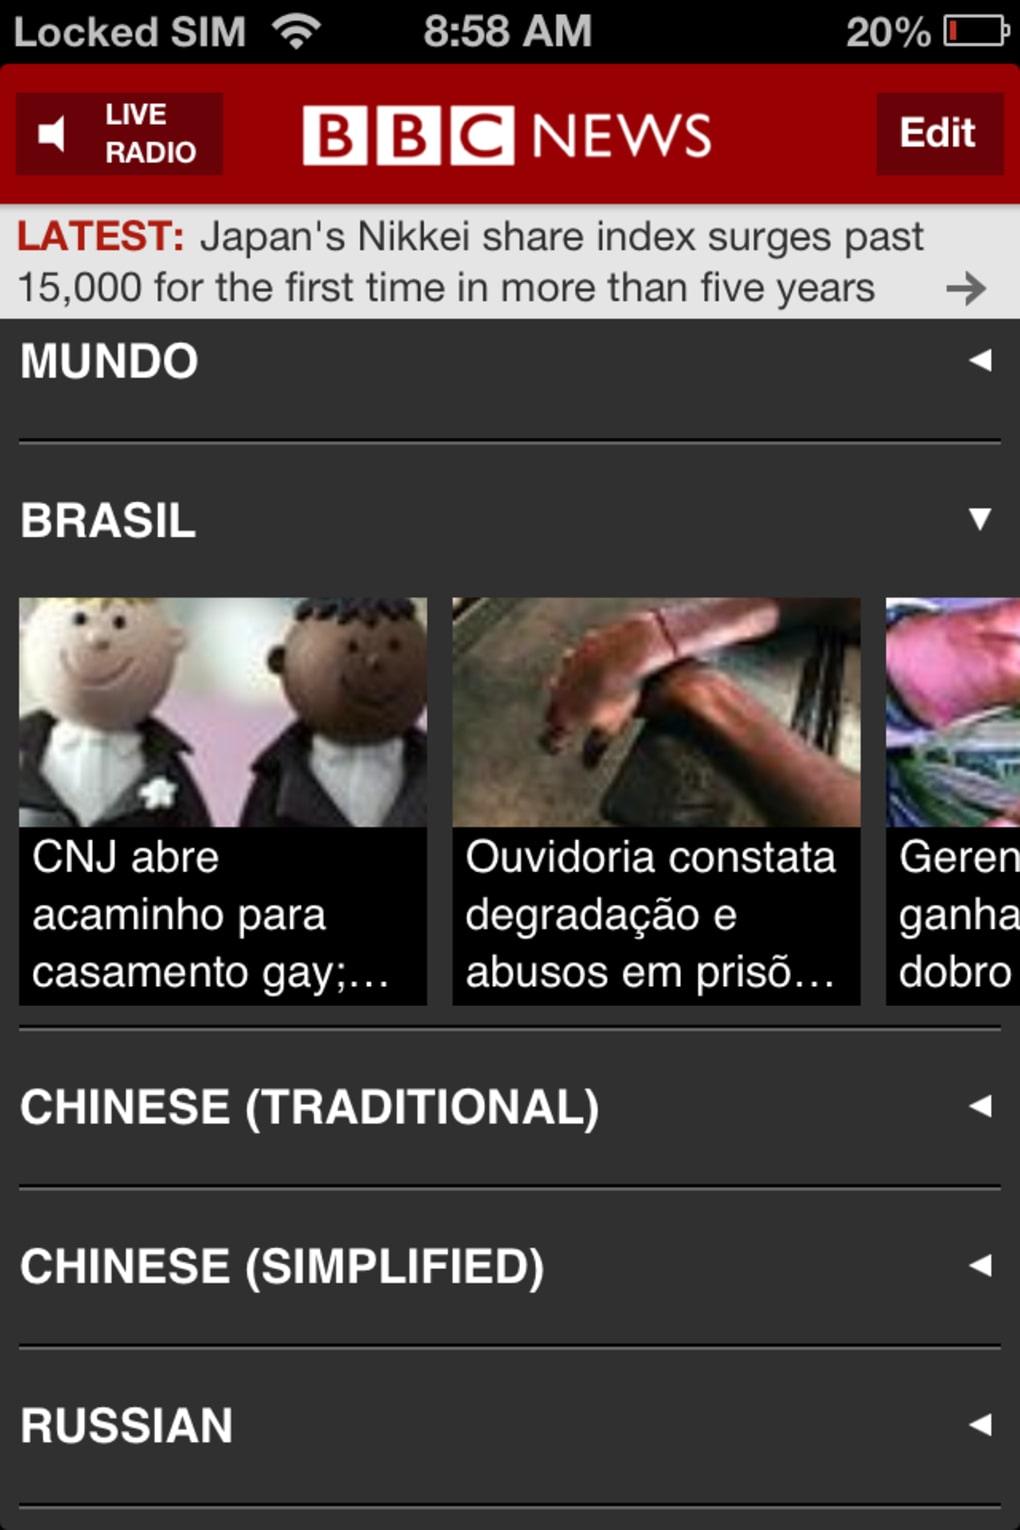 BBC News for iPhone - Download